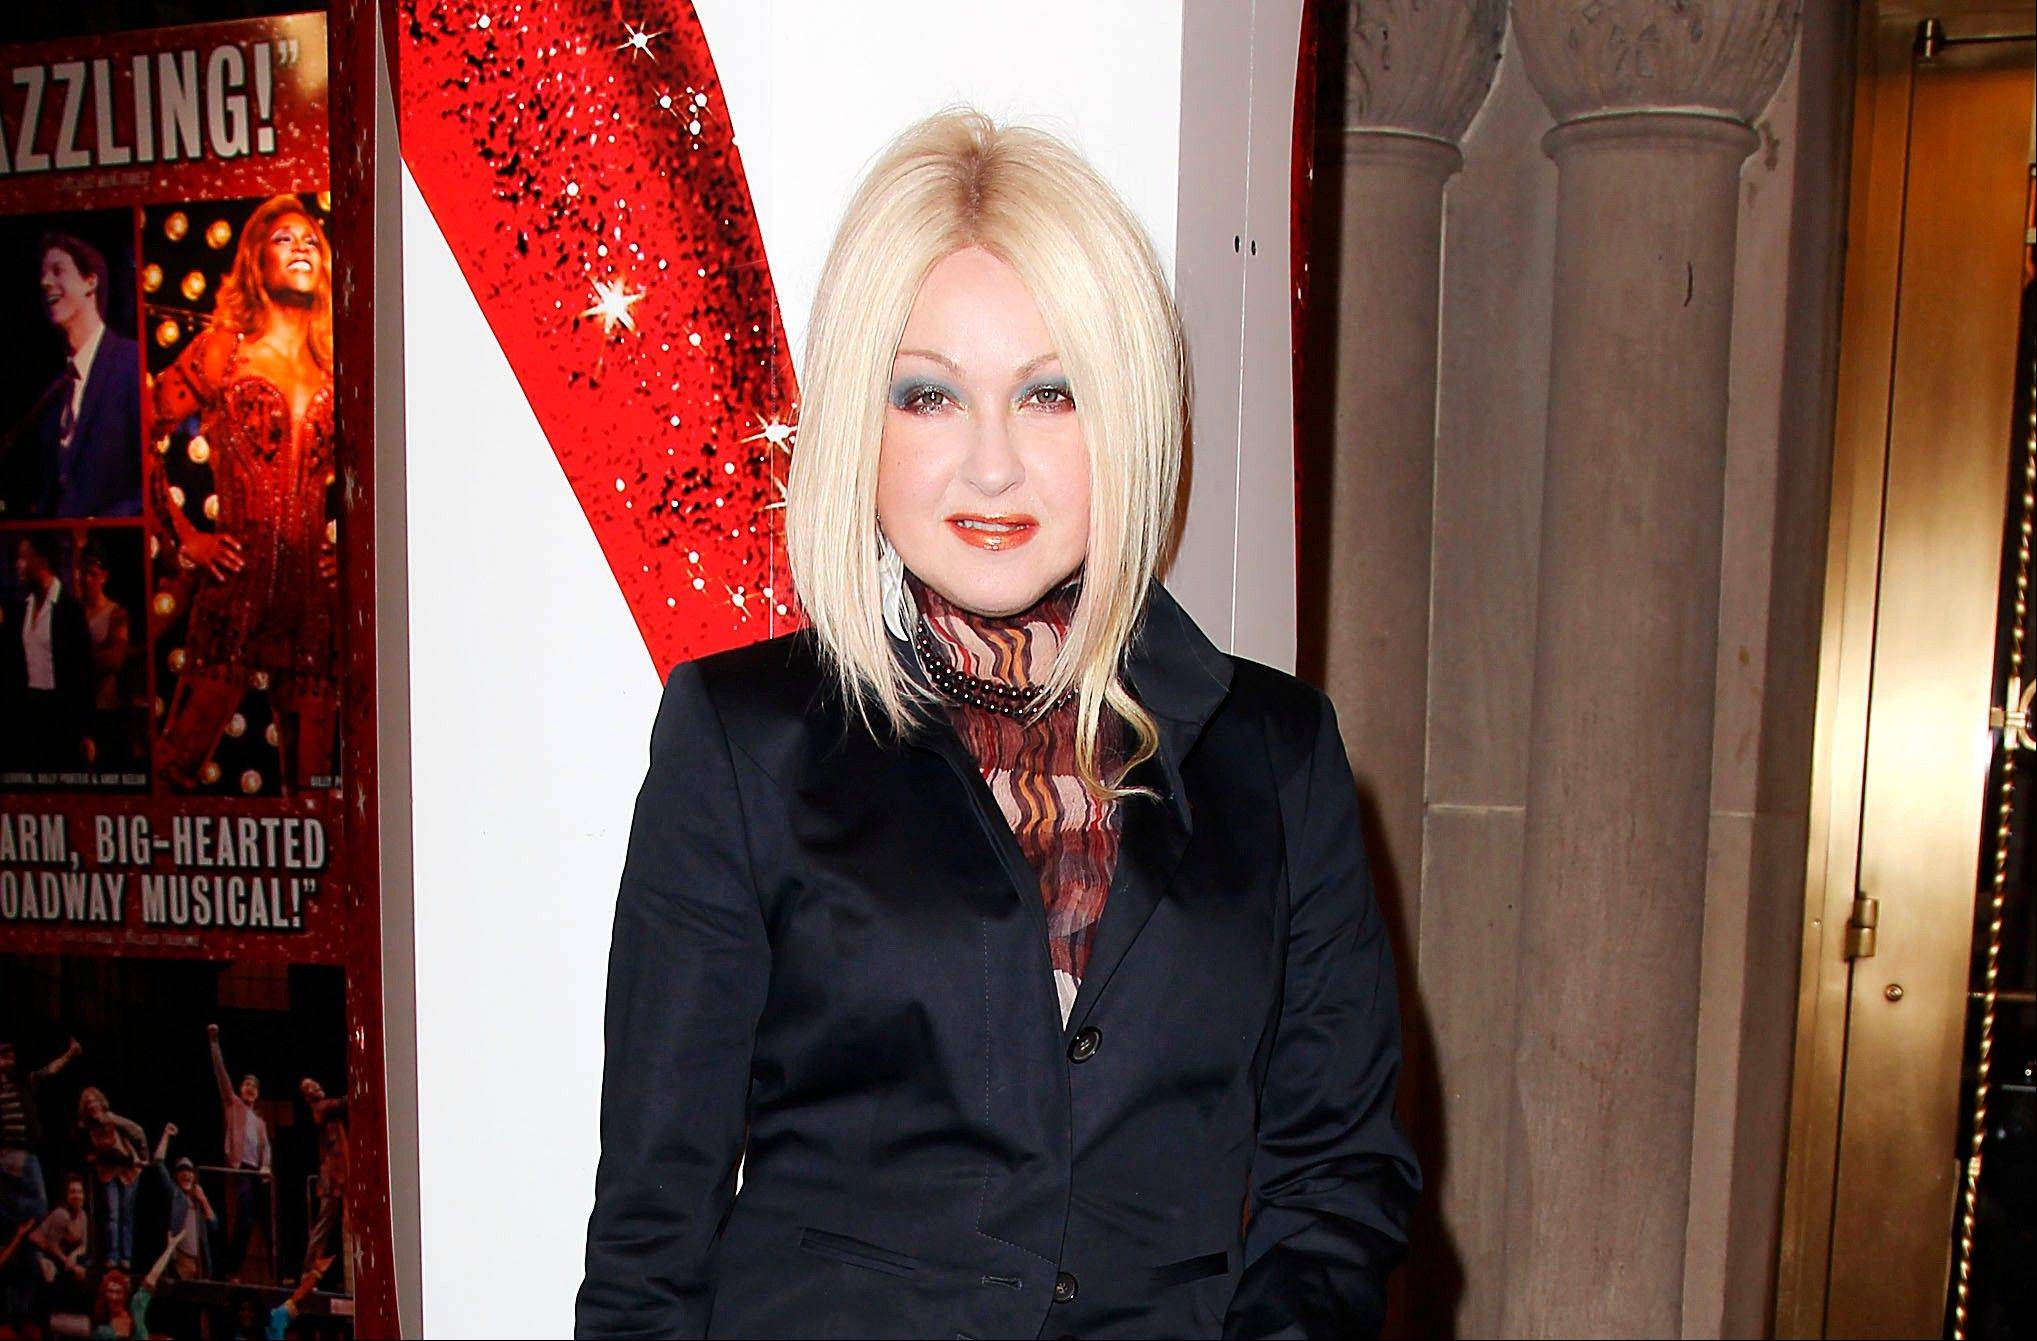 Cyndi Lauper at the open house for the upcoming musical �Kinky Boots,� featuring music written by her, at the Al Hirshfeld Theatre in New York.